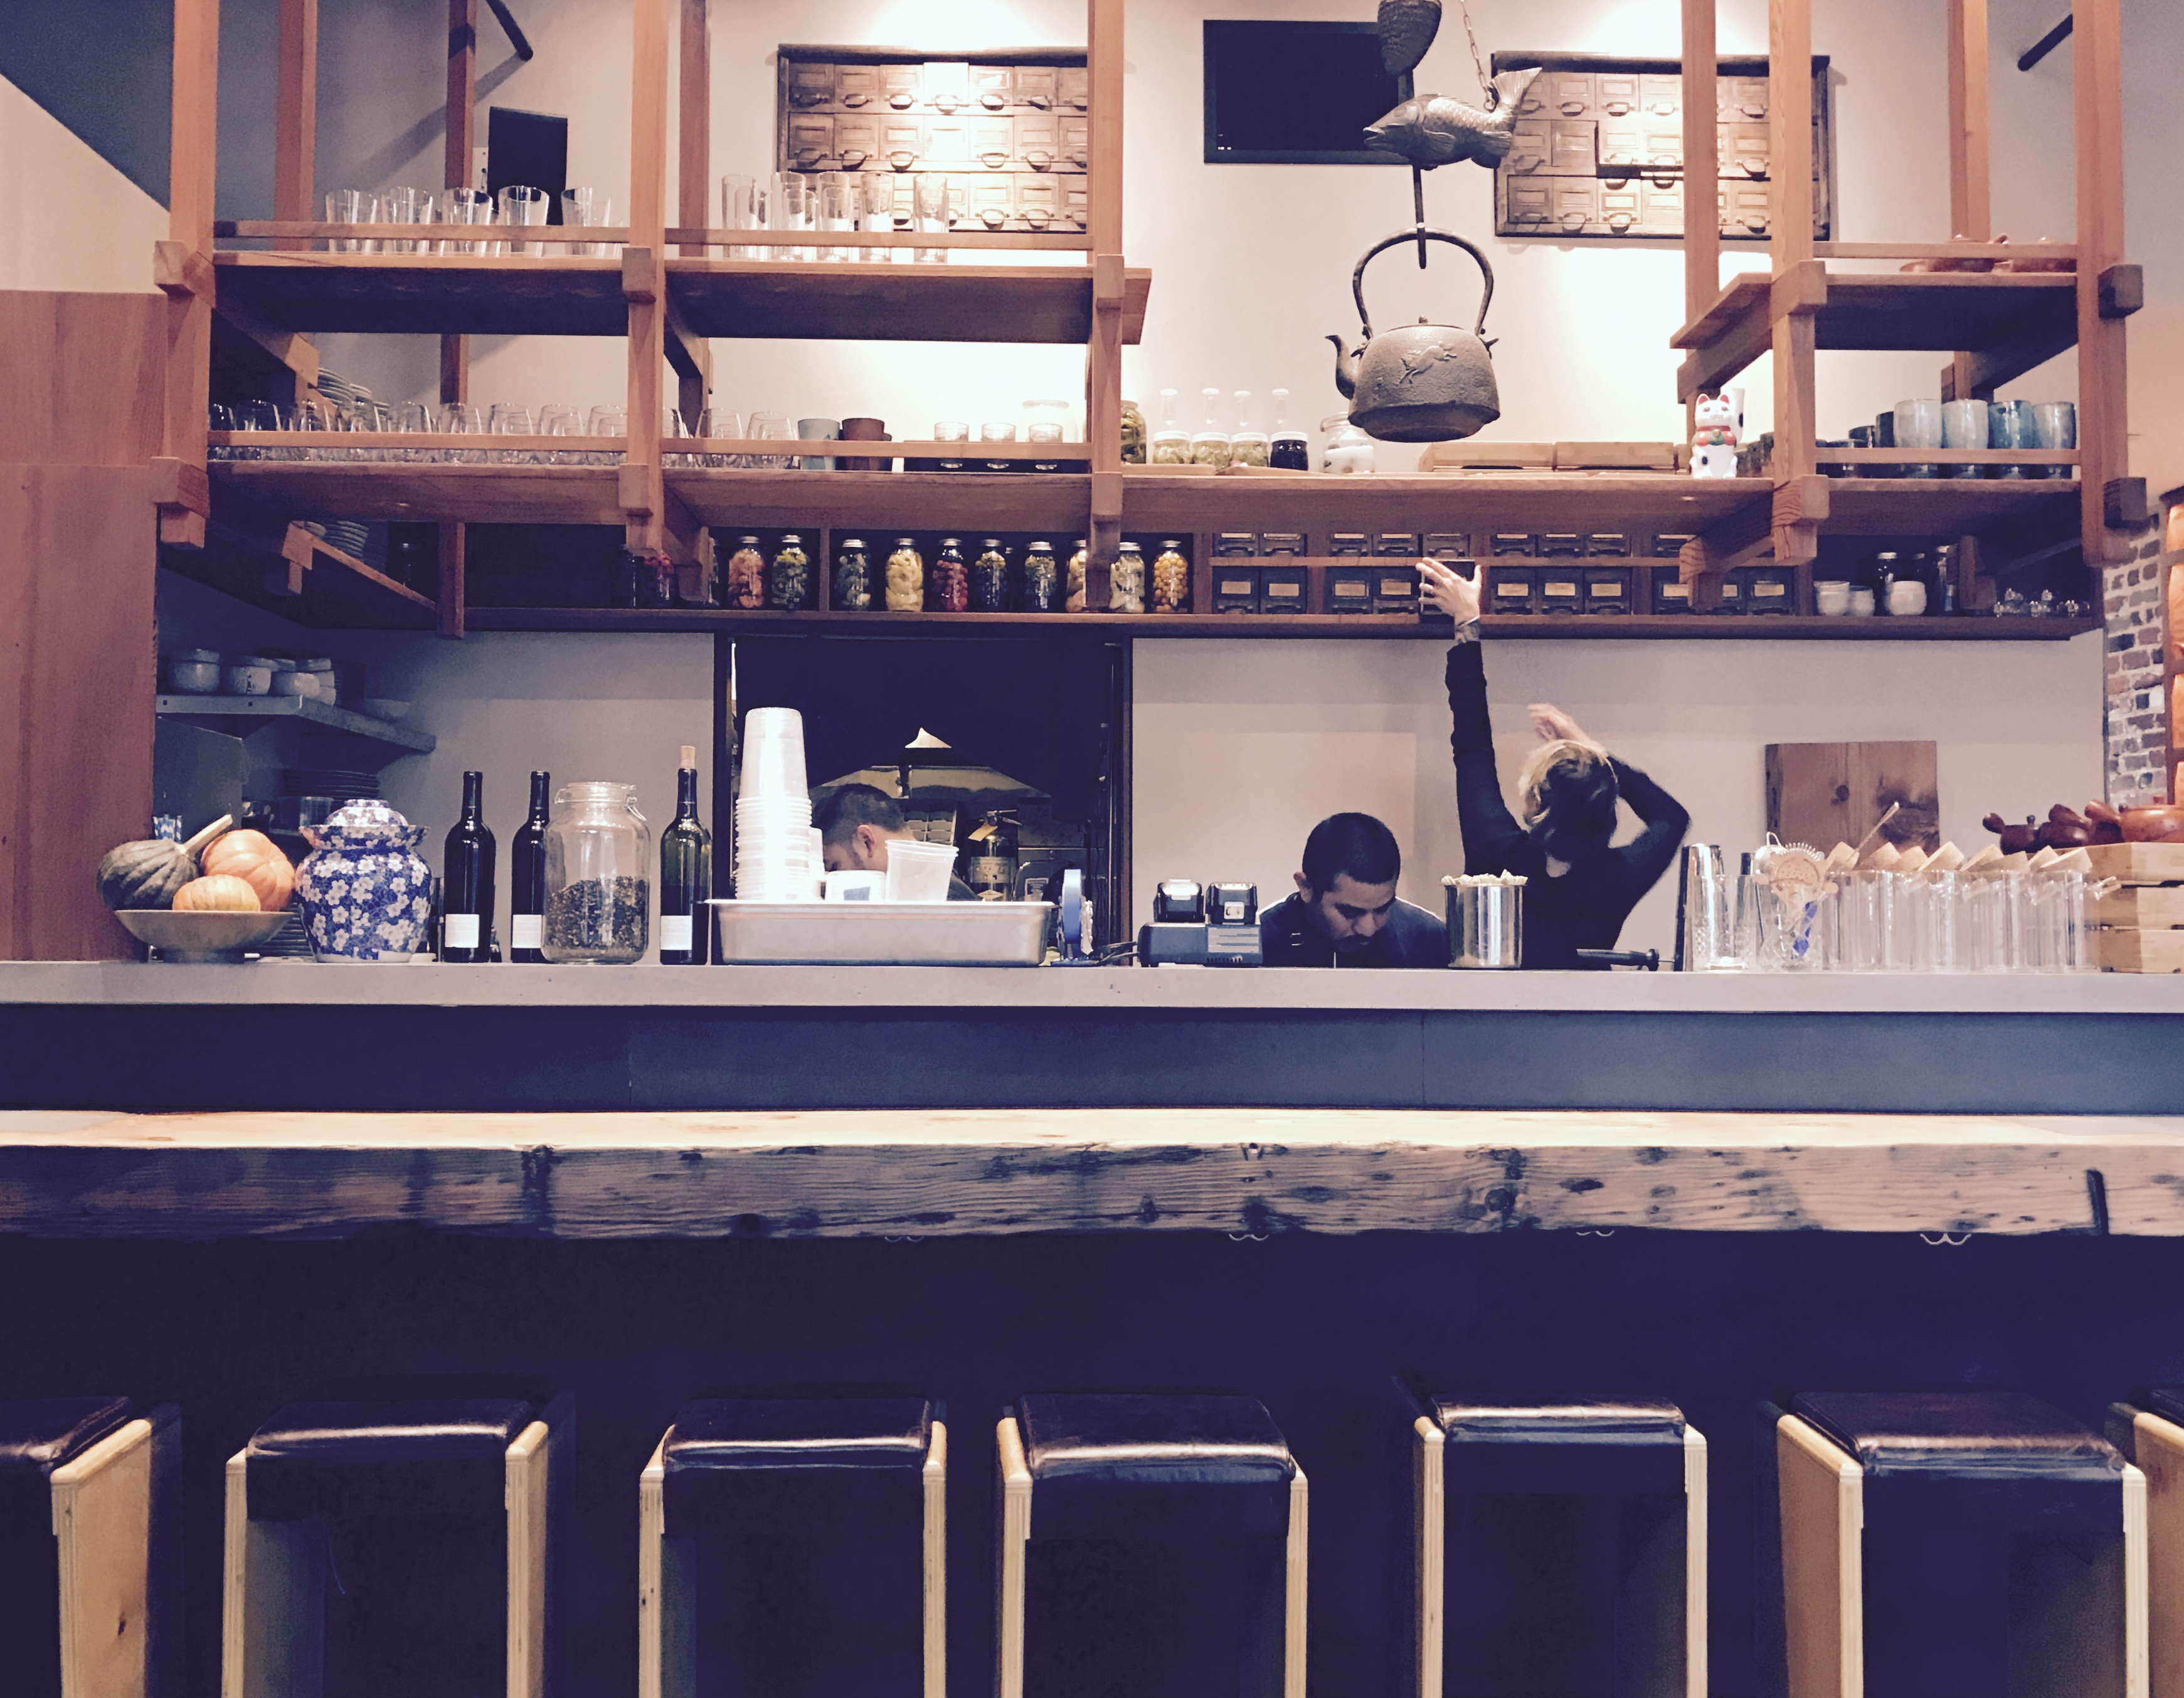 I could sit at this bar all day sipping tea and watching the kitchen prep for meal service.